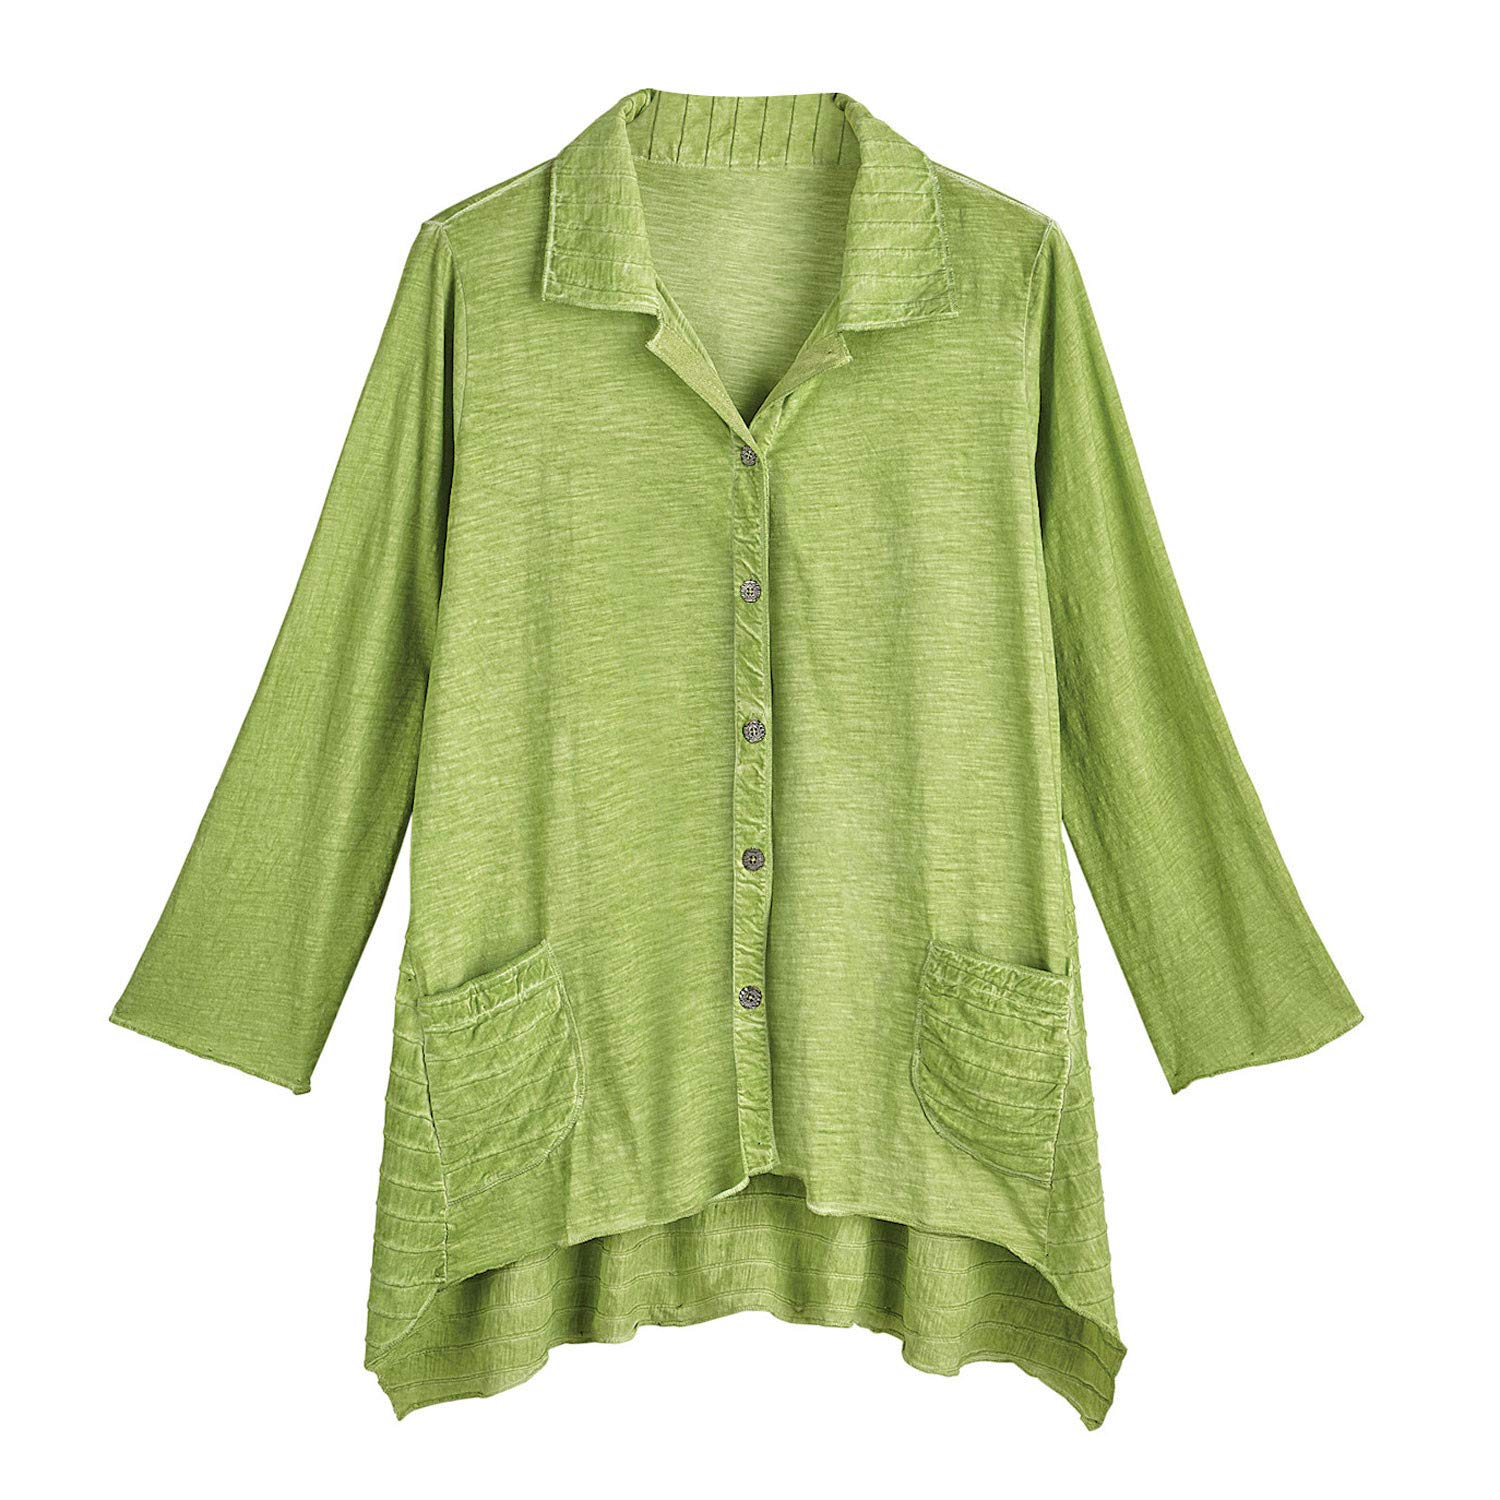 Parsley /& Sage Womens Pin Tucks Tunic Top Green Button Front Collared Shirt